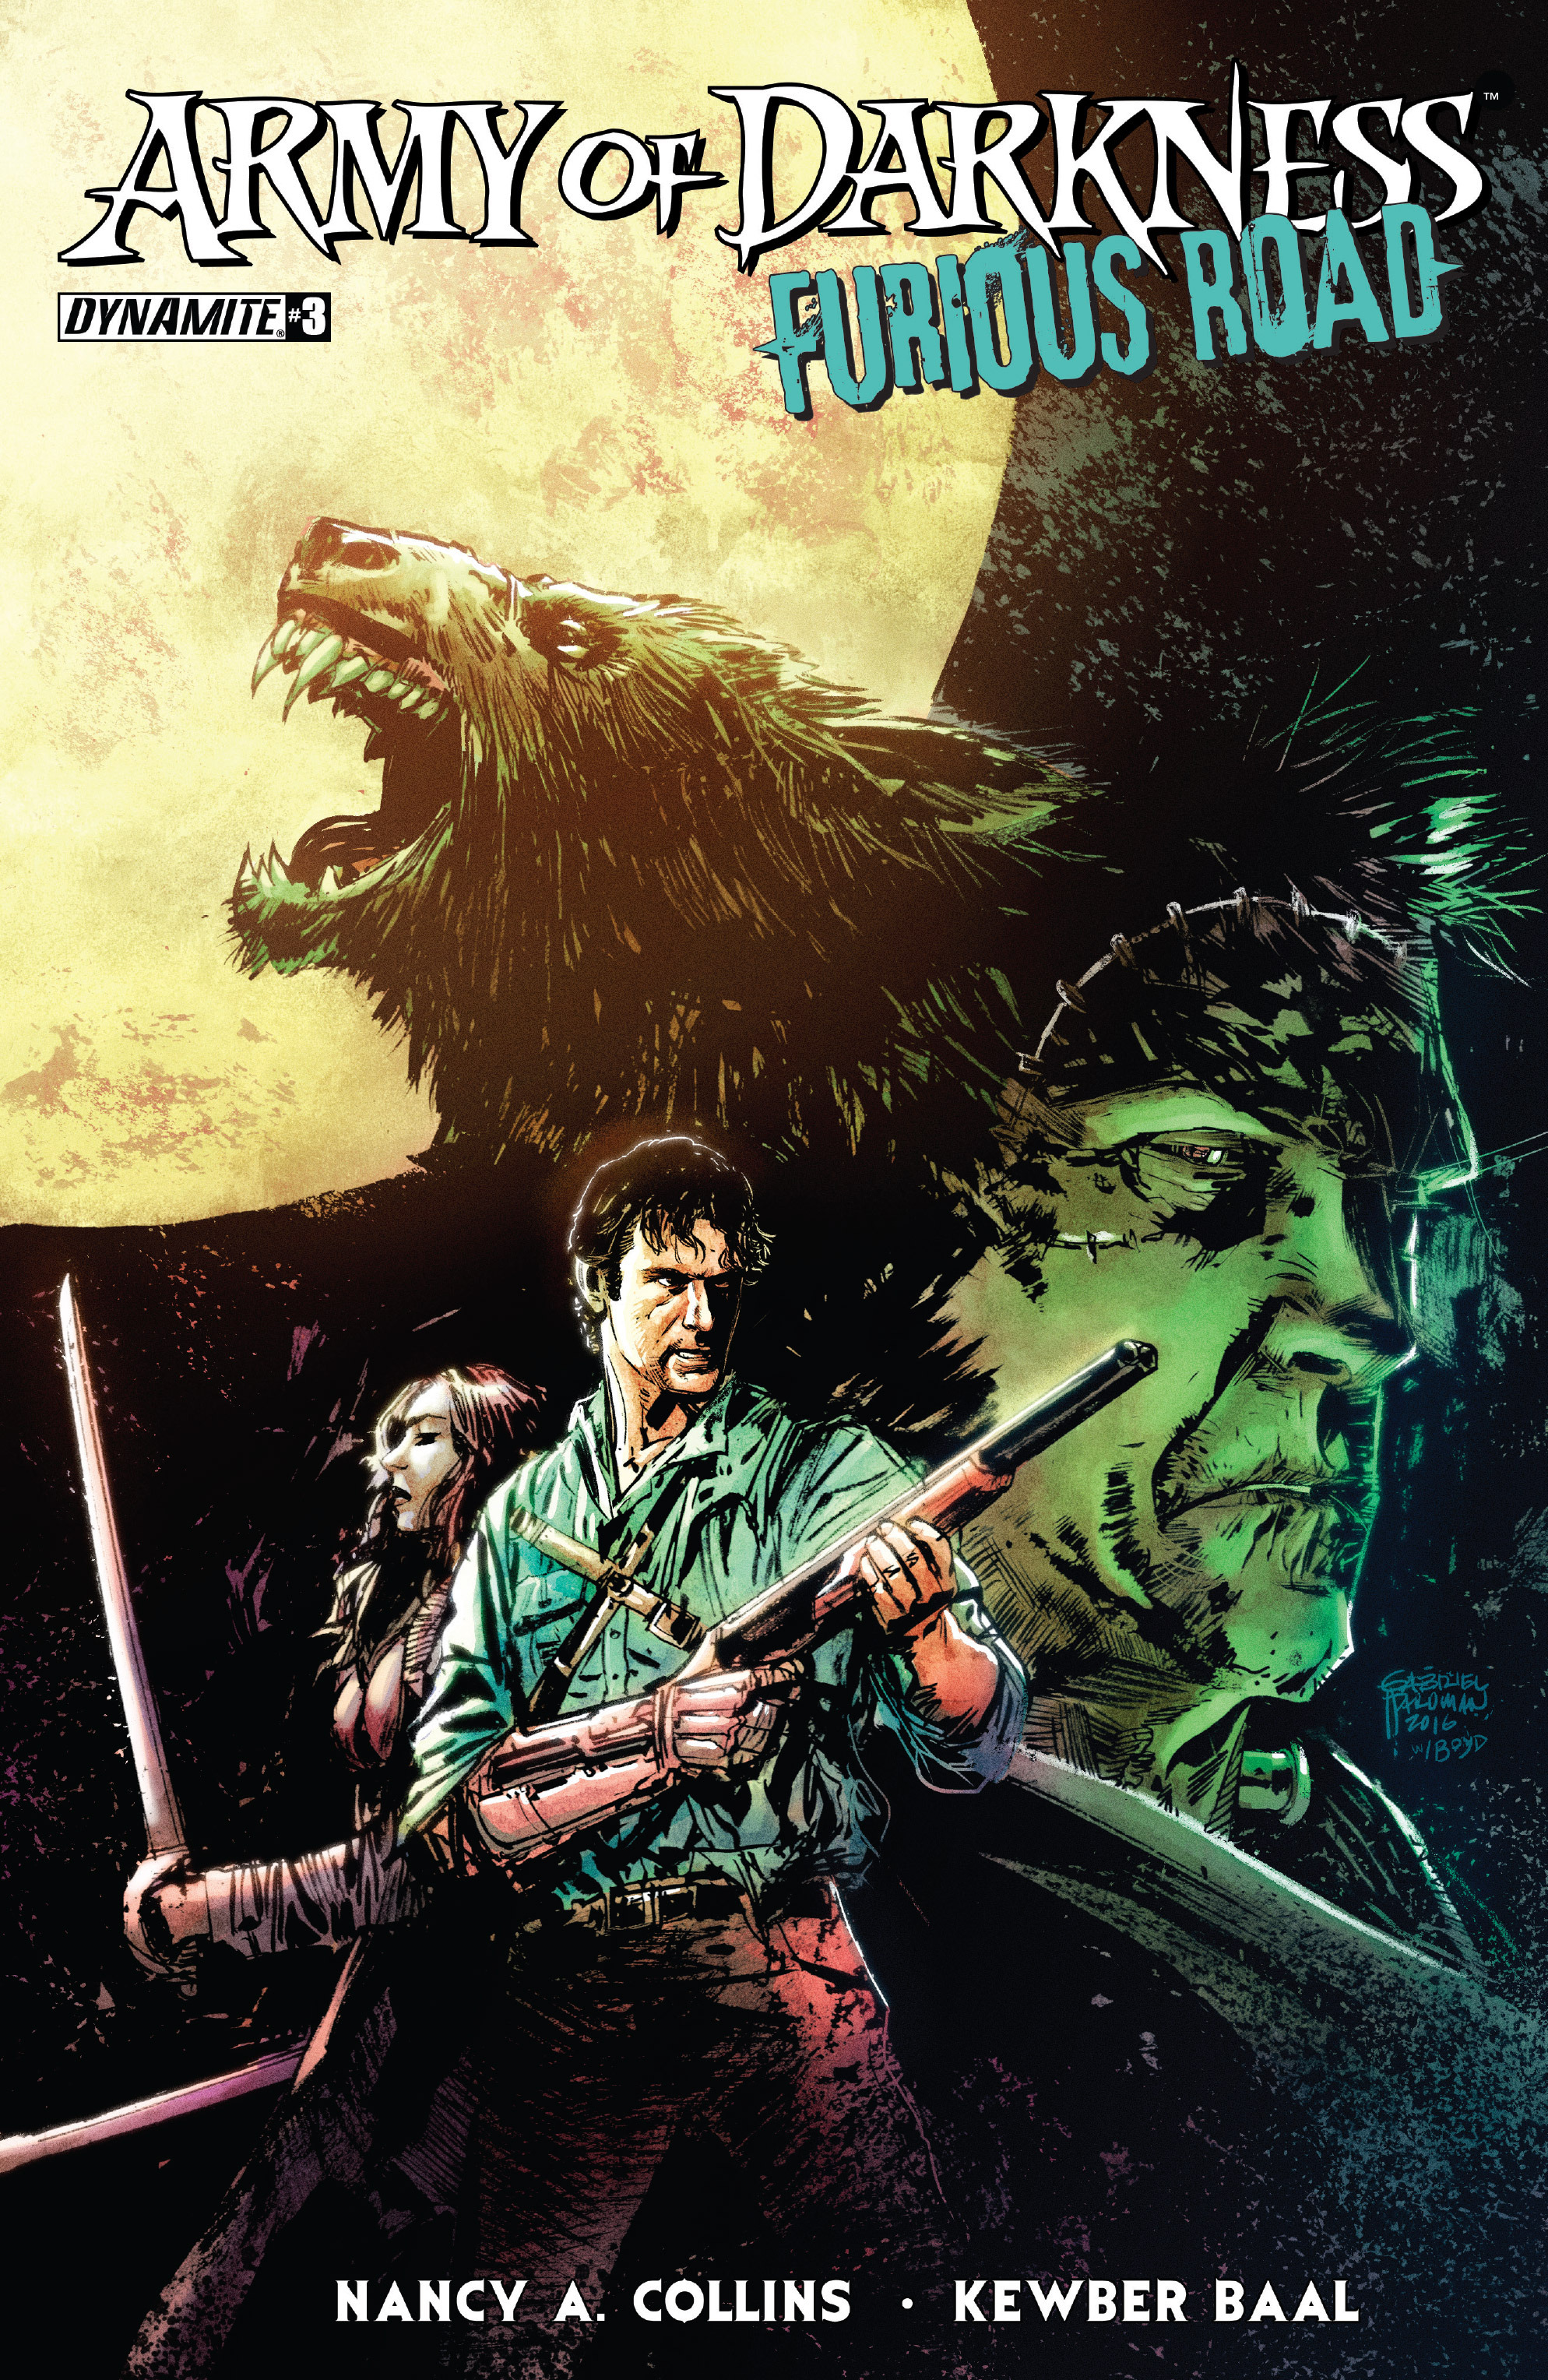 Read online Army of Darkness: Furious Road comic -  Issue #3 - 1